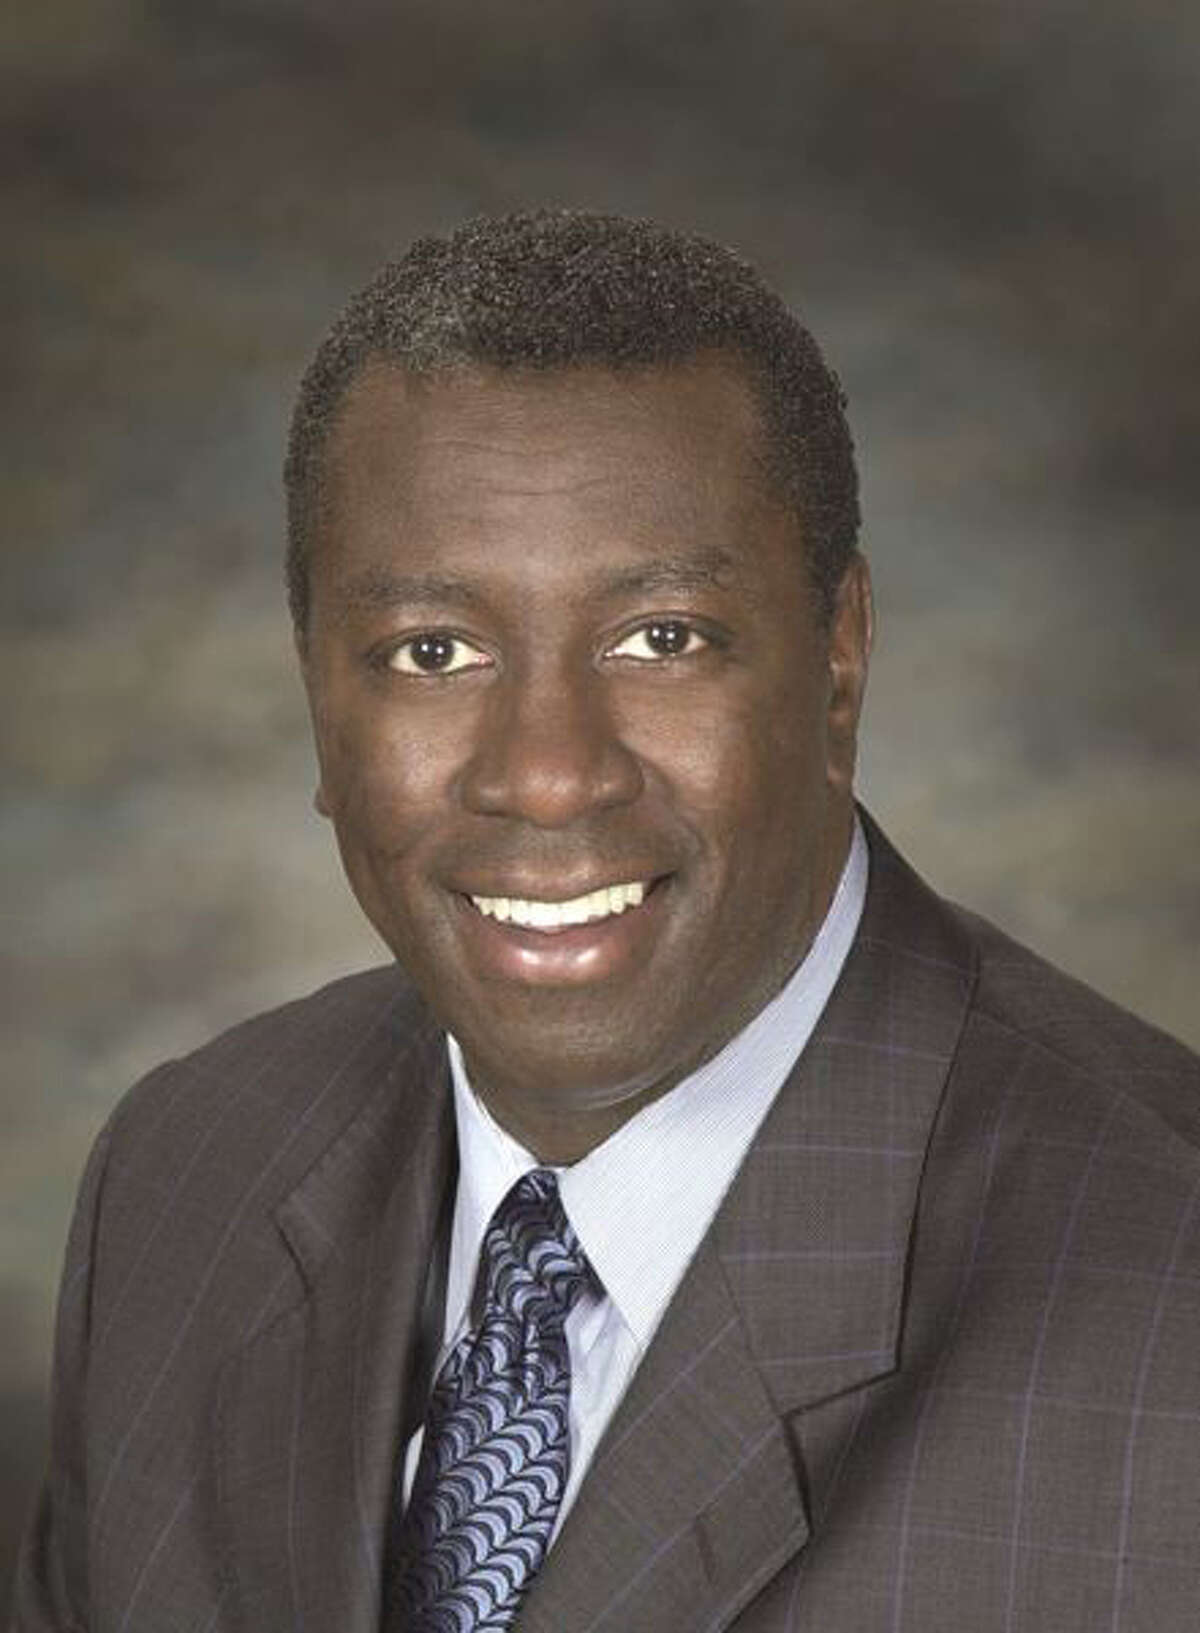 Chris Oliver has served as a Houston Community College trustee for 21 years. He pleaded guilty to a charge of bribery earlier this year.